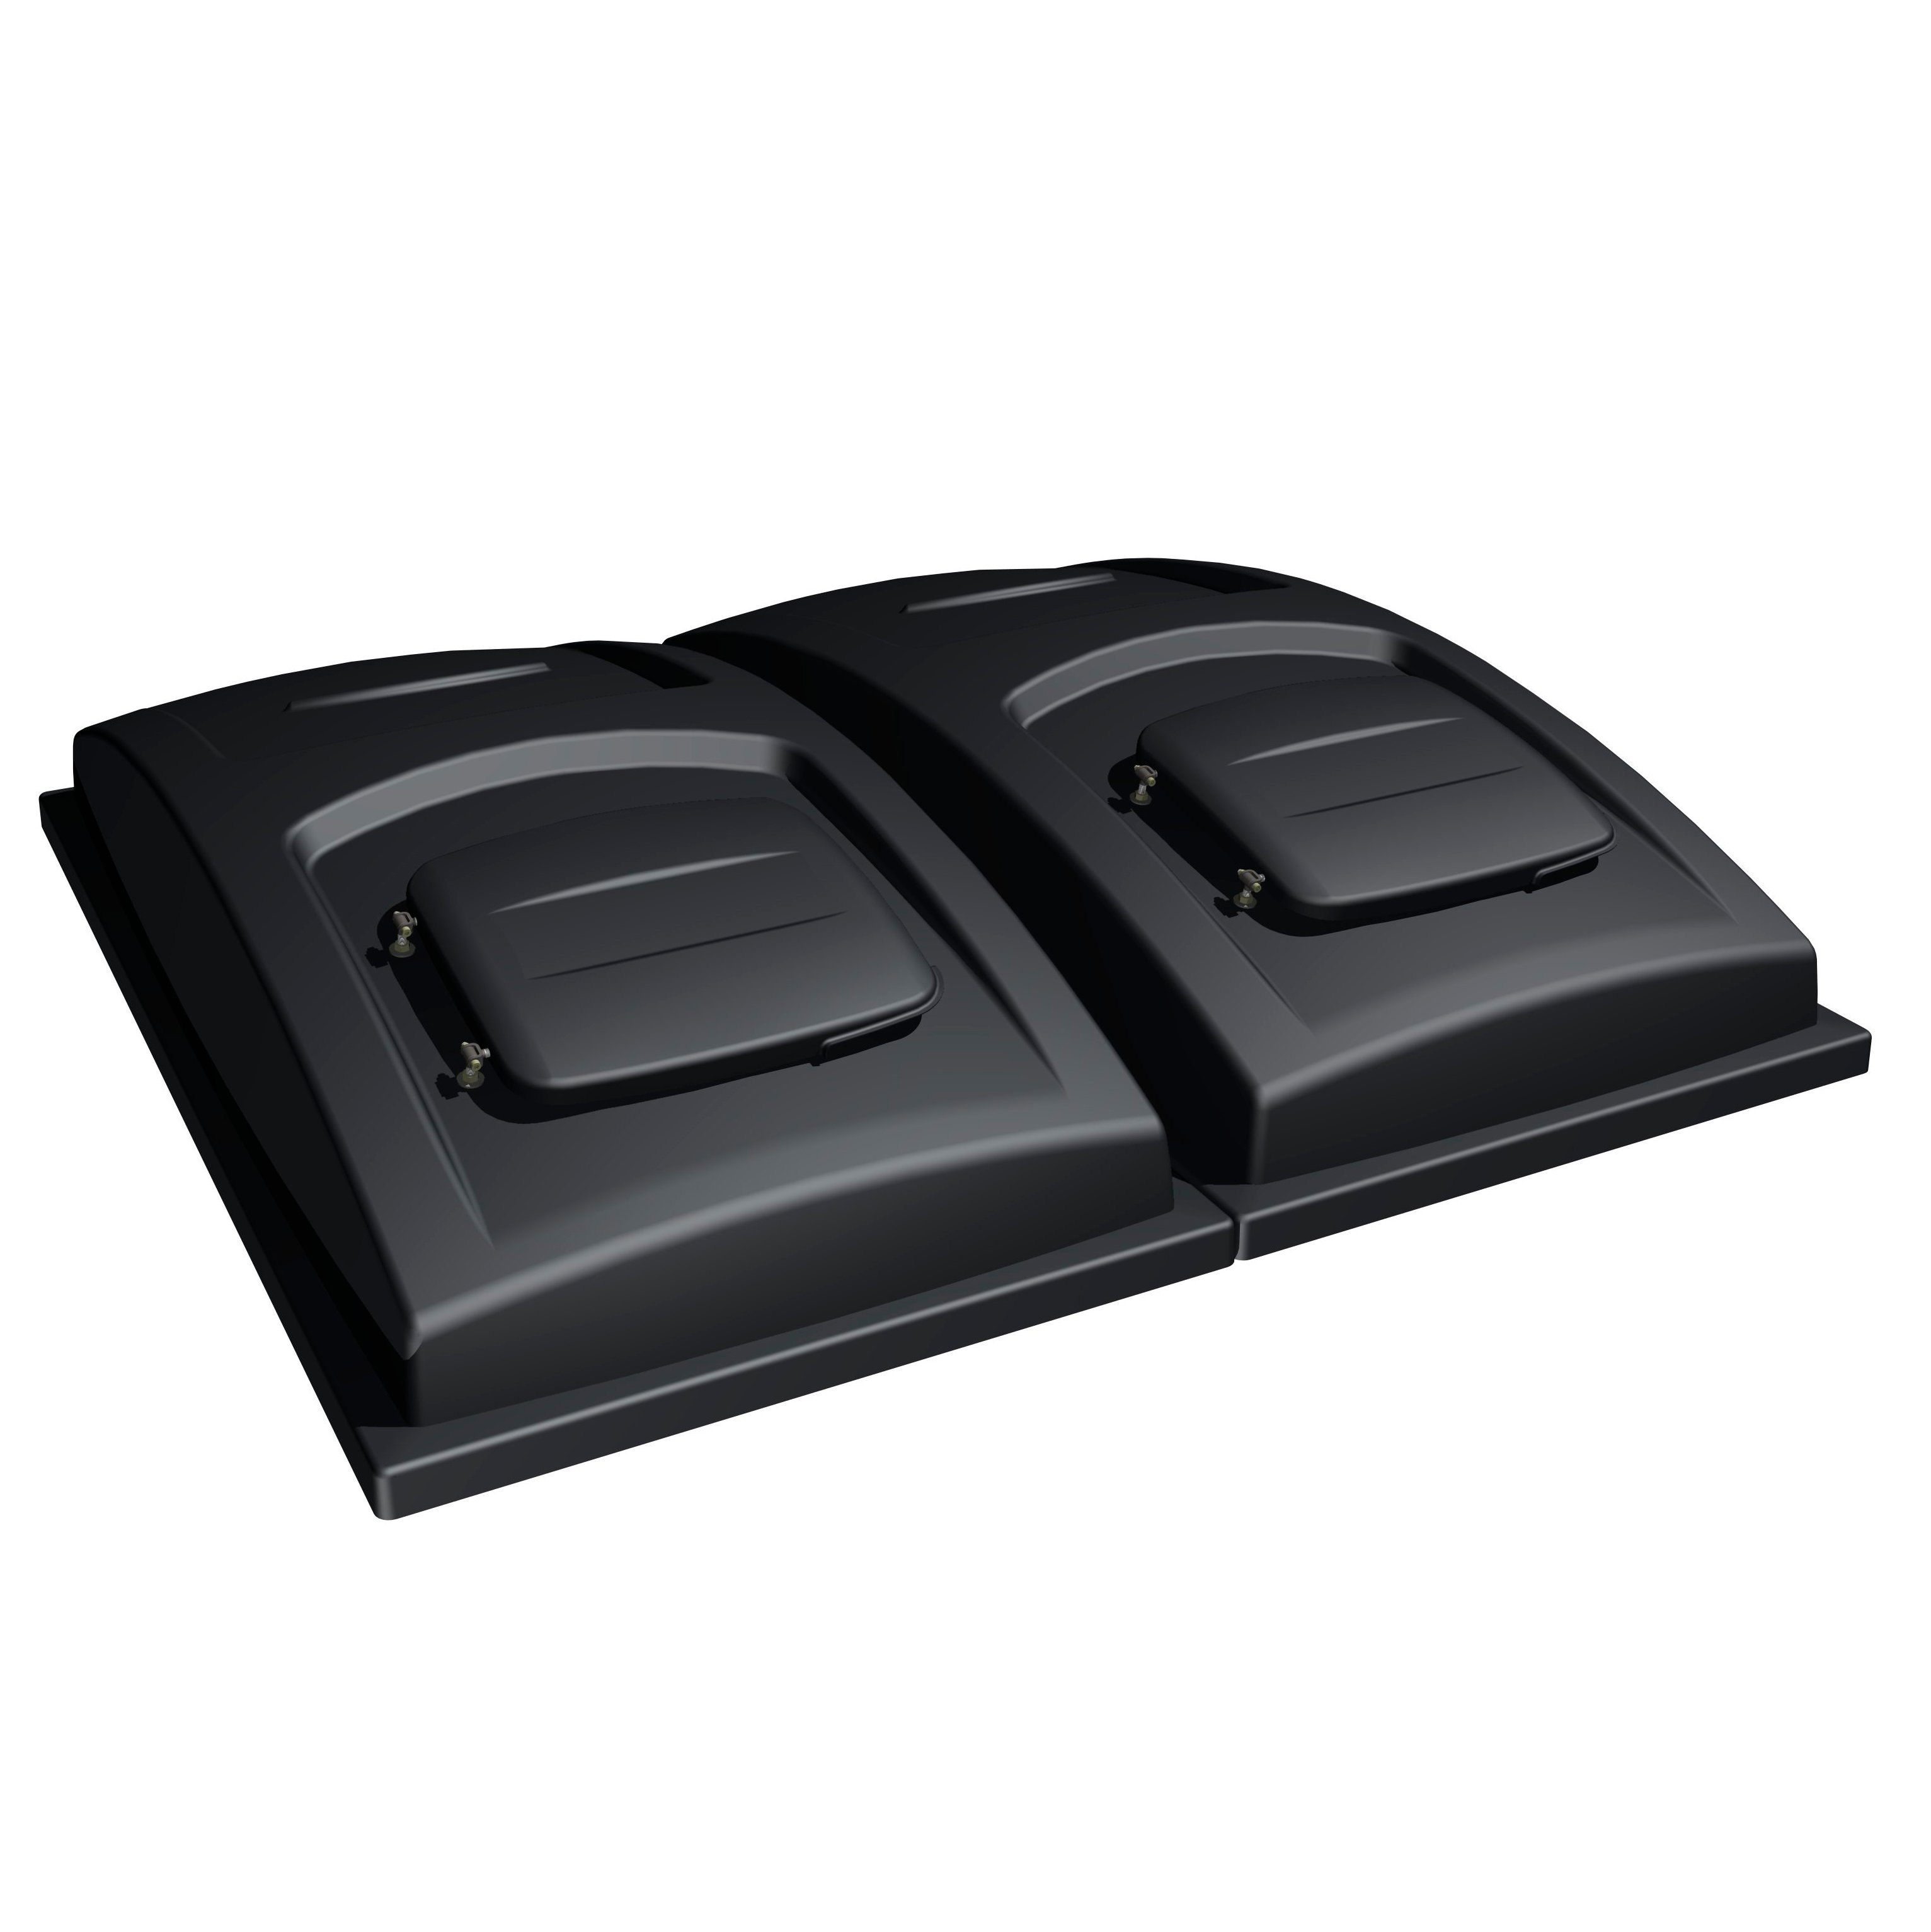 MolokDomino lid systems_2x2